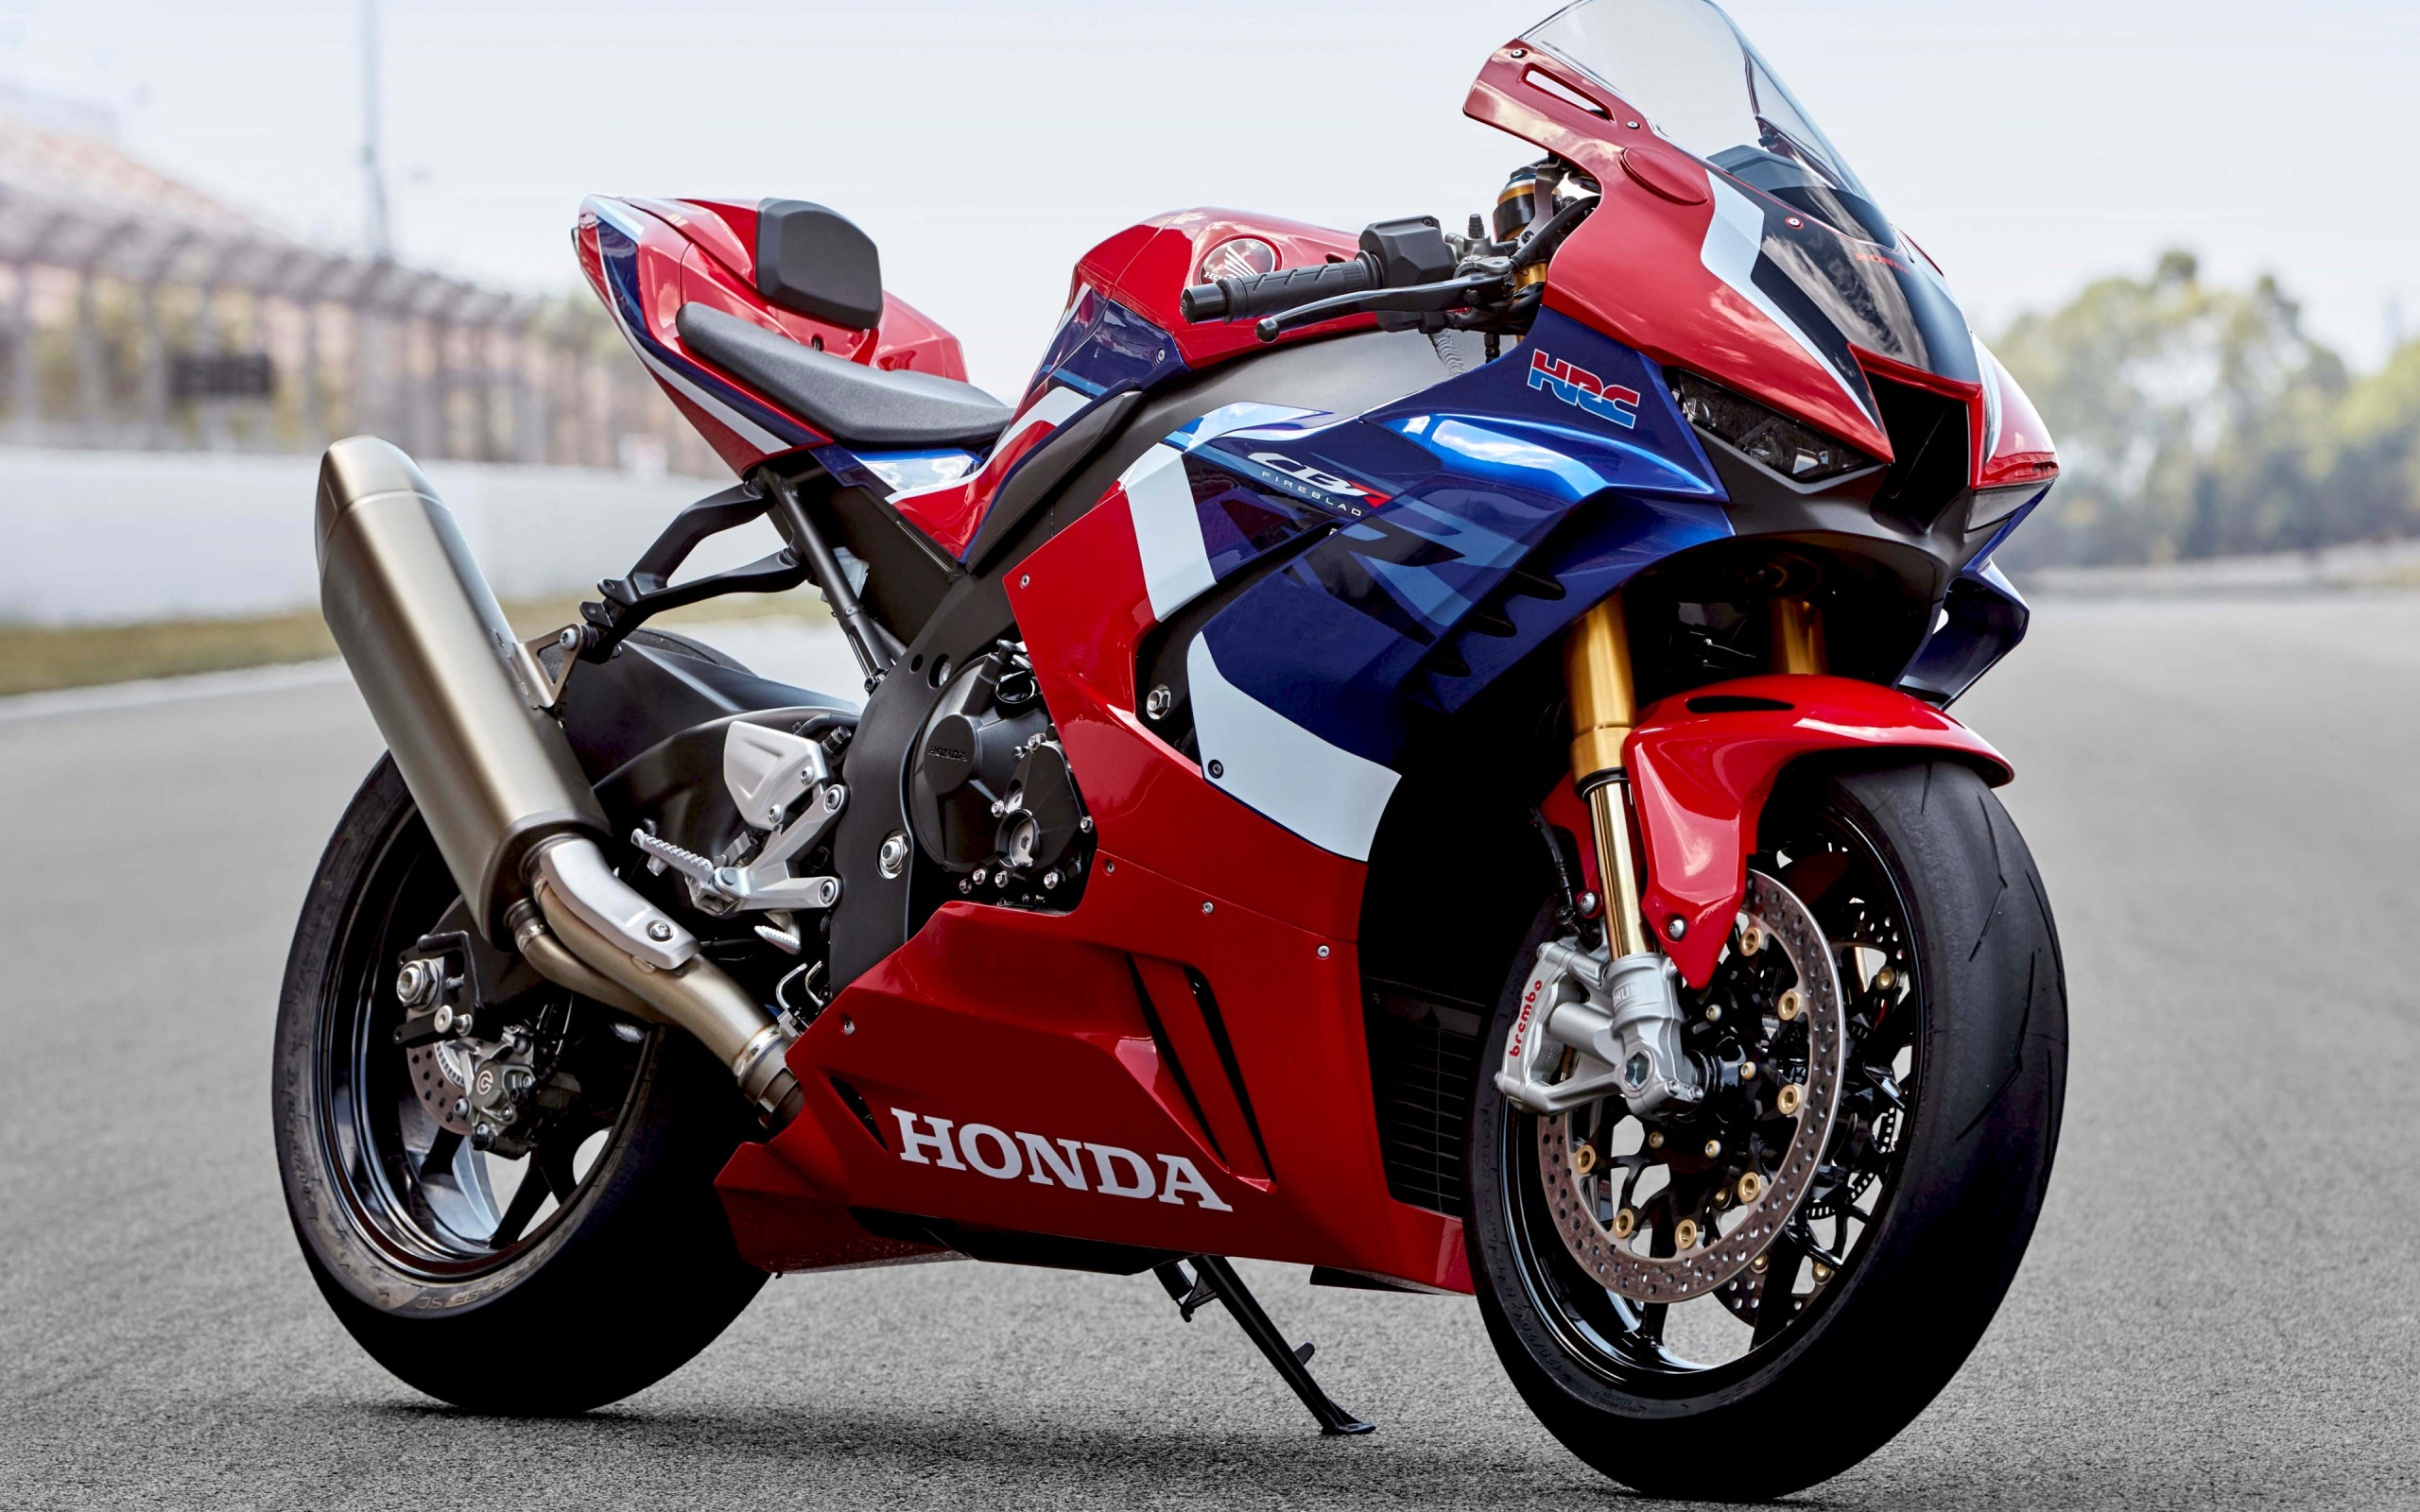 Honda CBR1000RR R SP wallpaper 2560x1600